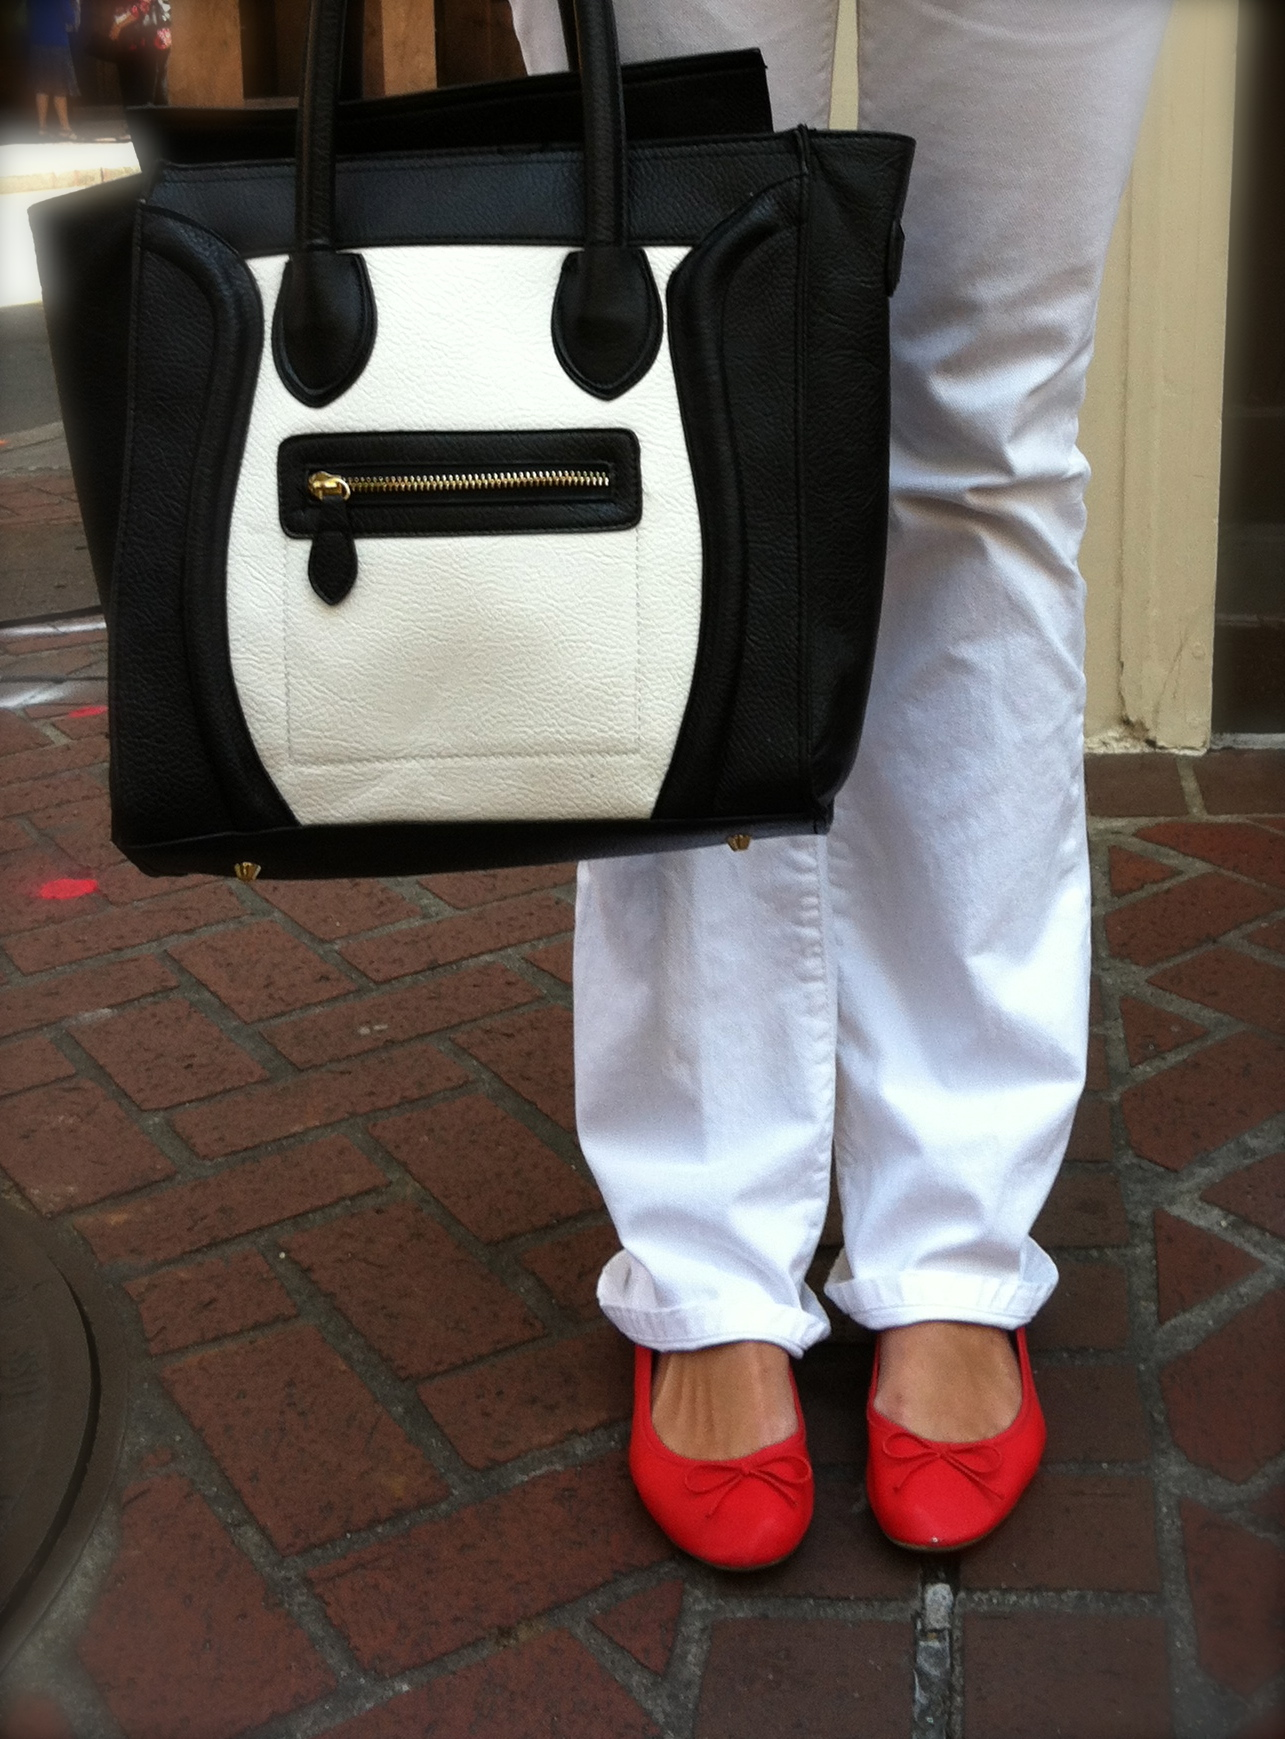 yves saint laurent tote bag - celine look alike purse | Lucky Girl Finds